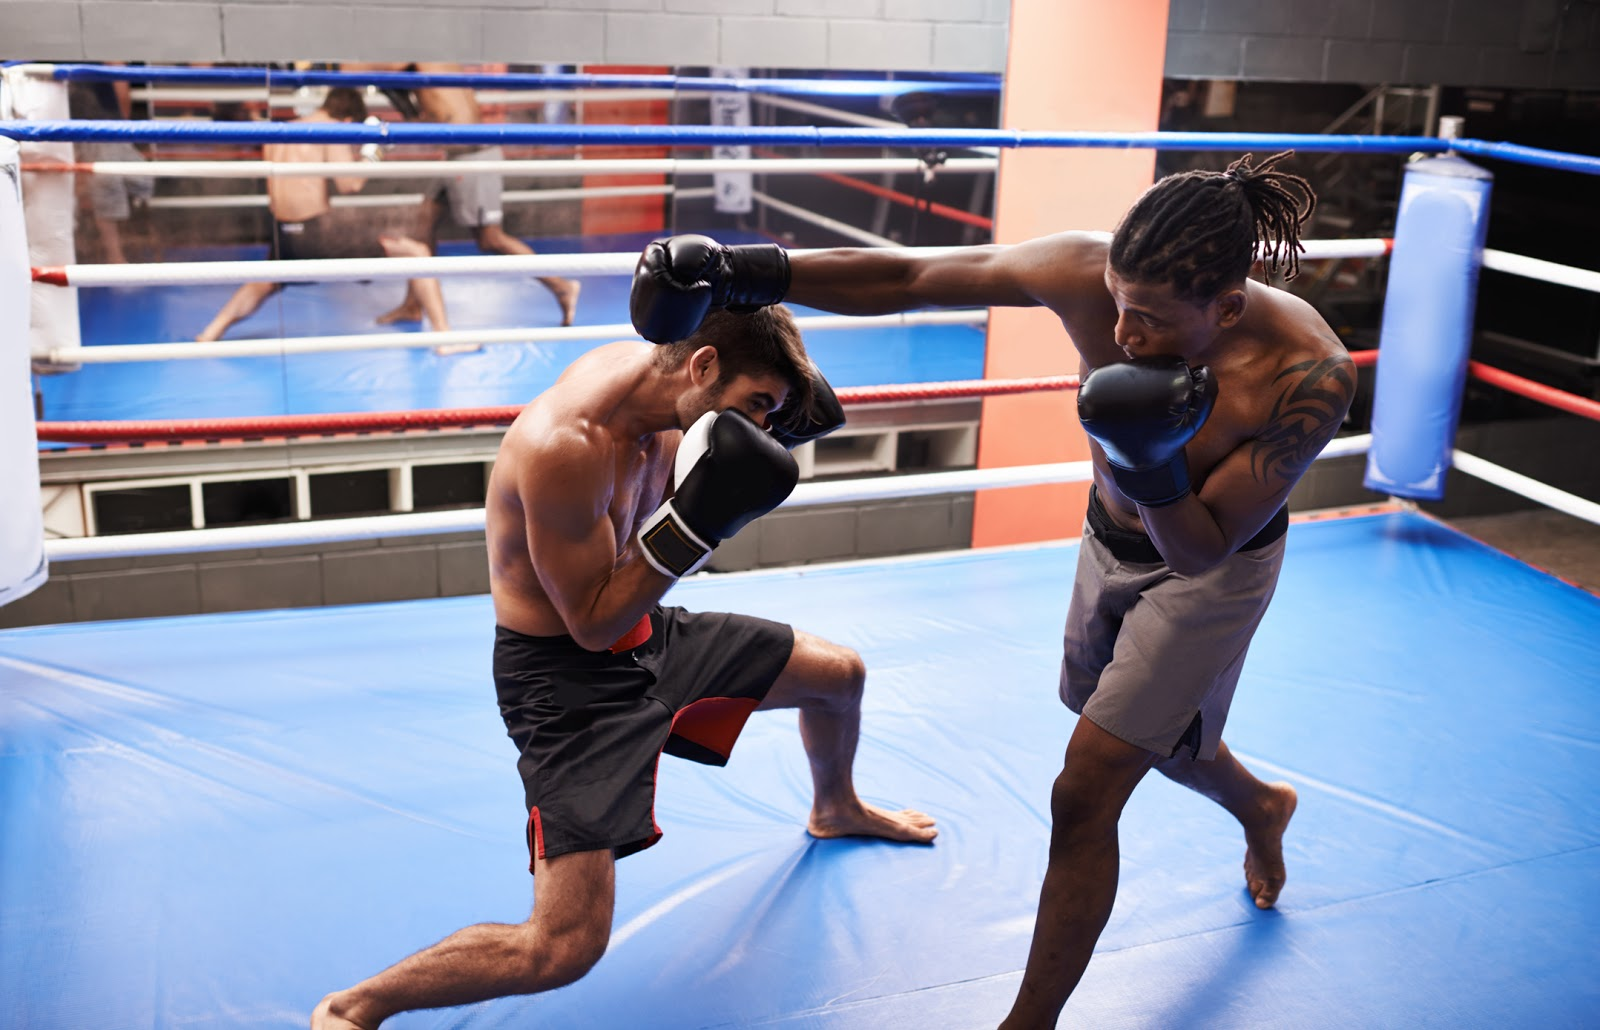 Boxer evading a punch long reach punch with his guard up in a training ring